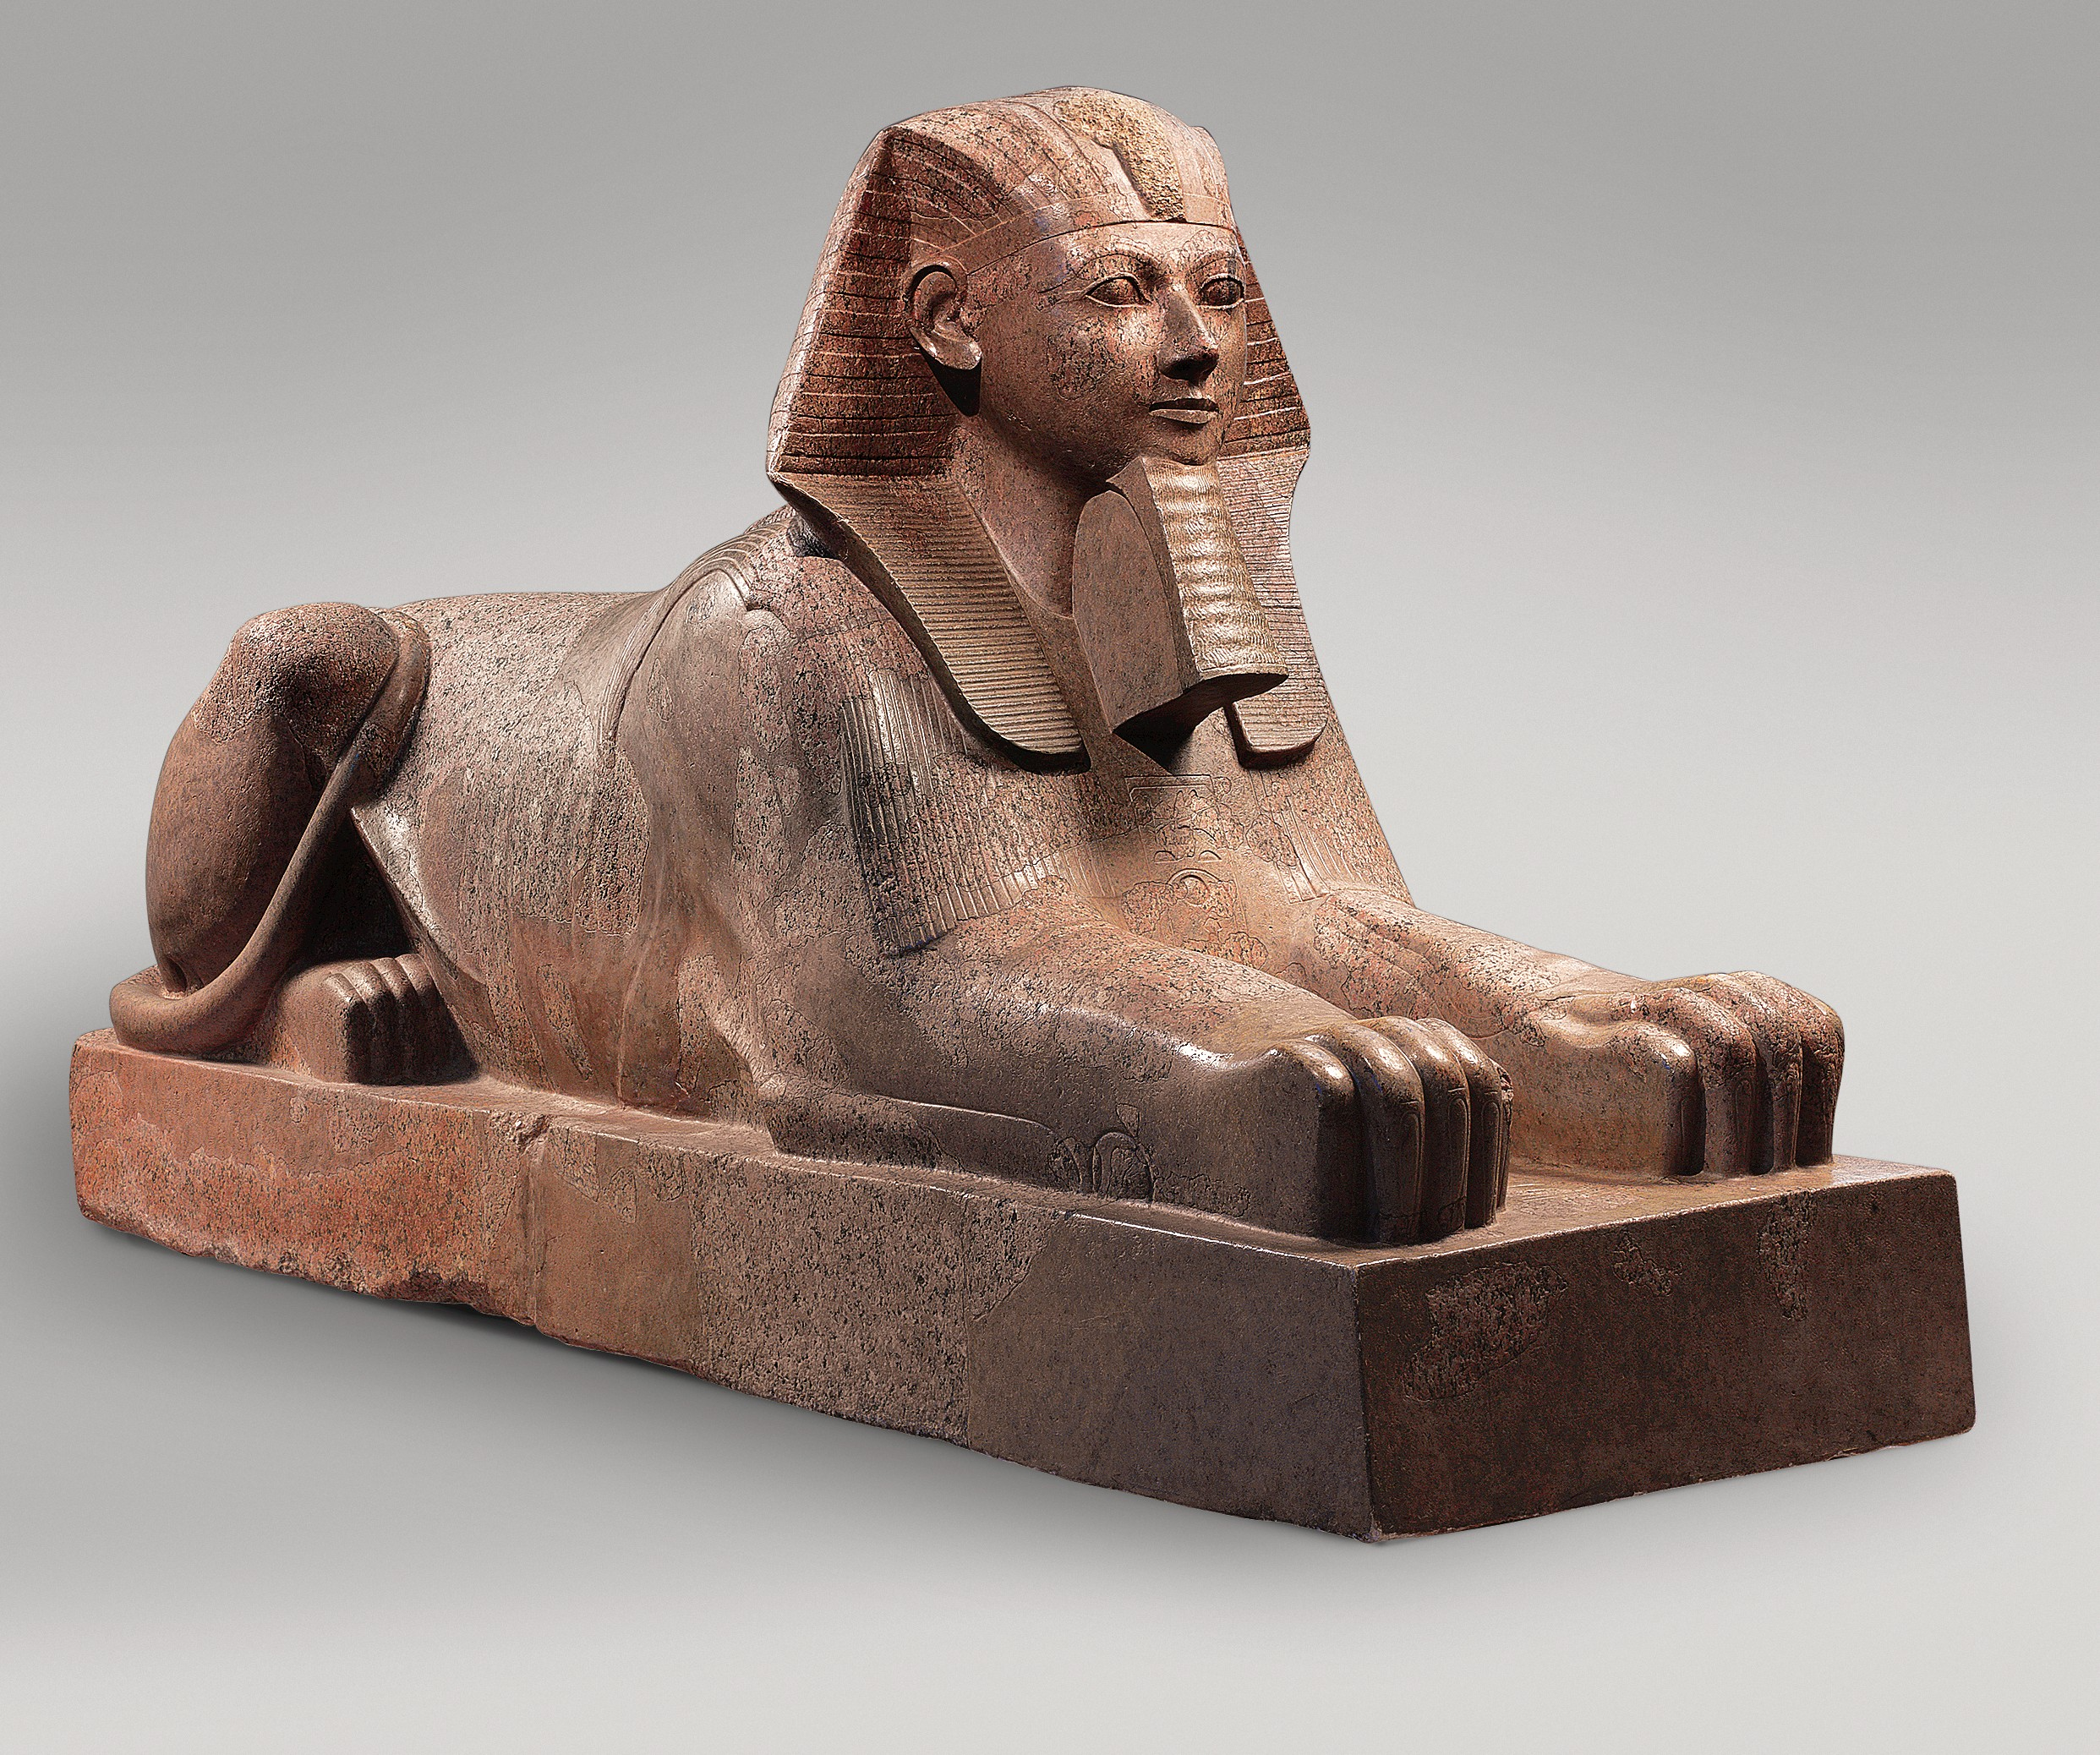 who says a lady can't be a sphinx and a pharaoh? - Statue of Hatshepsut, courtesy of the Metropolitan Museum of Art.